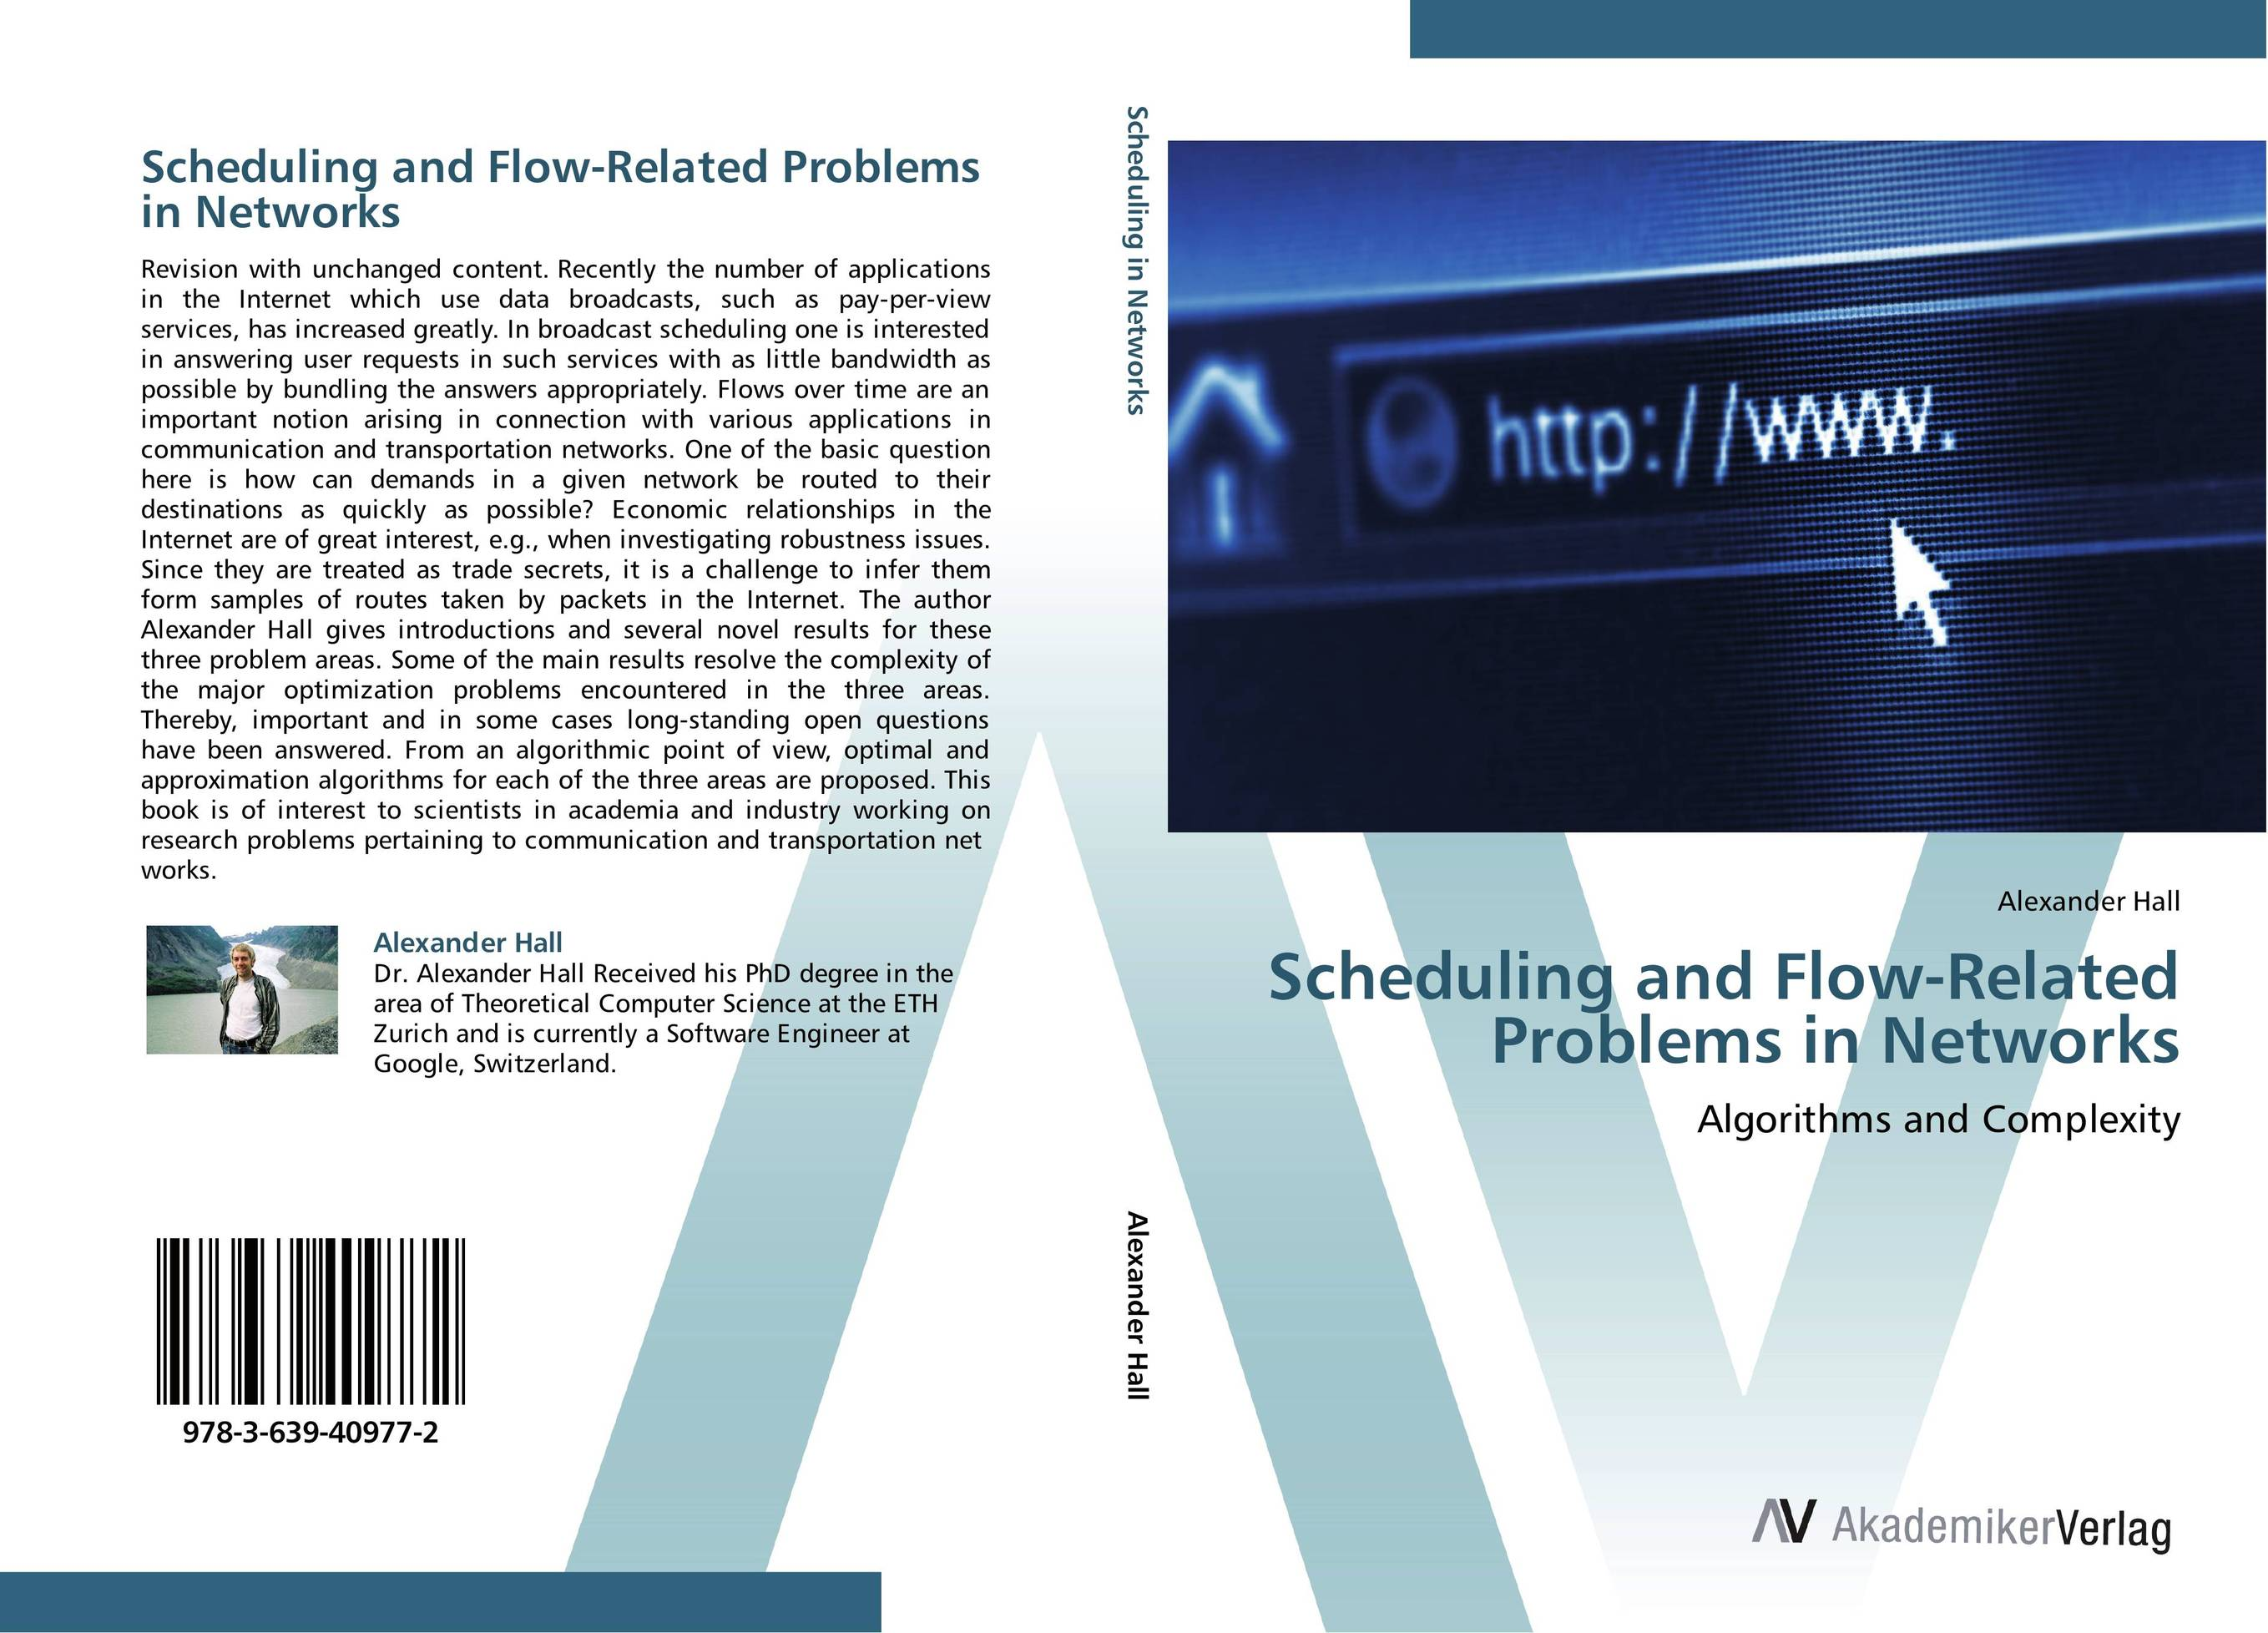 Scheduling and Flow-Related Problems in Networks investigating problems pertaining to concord